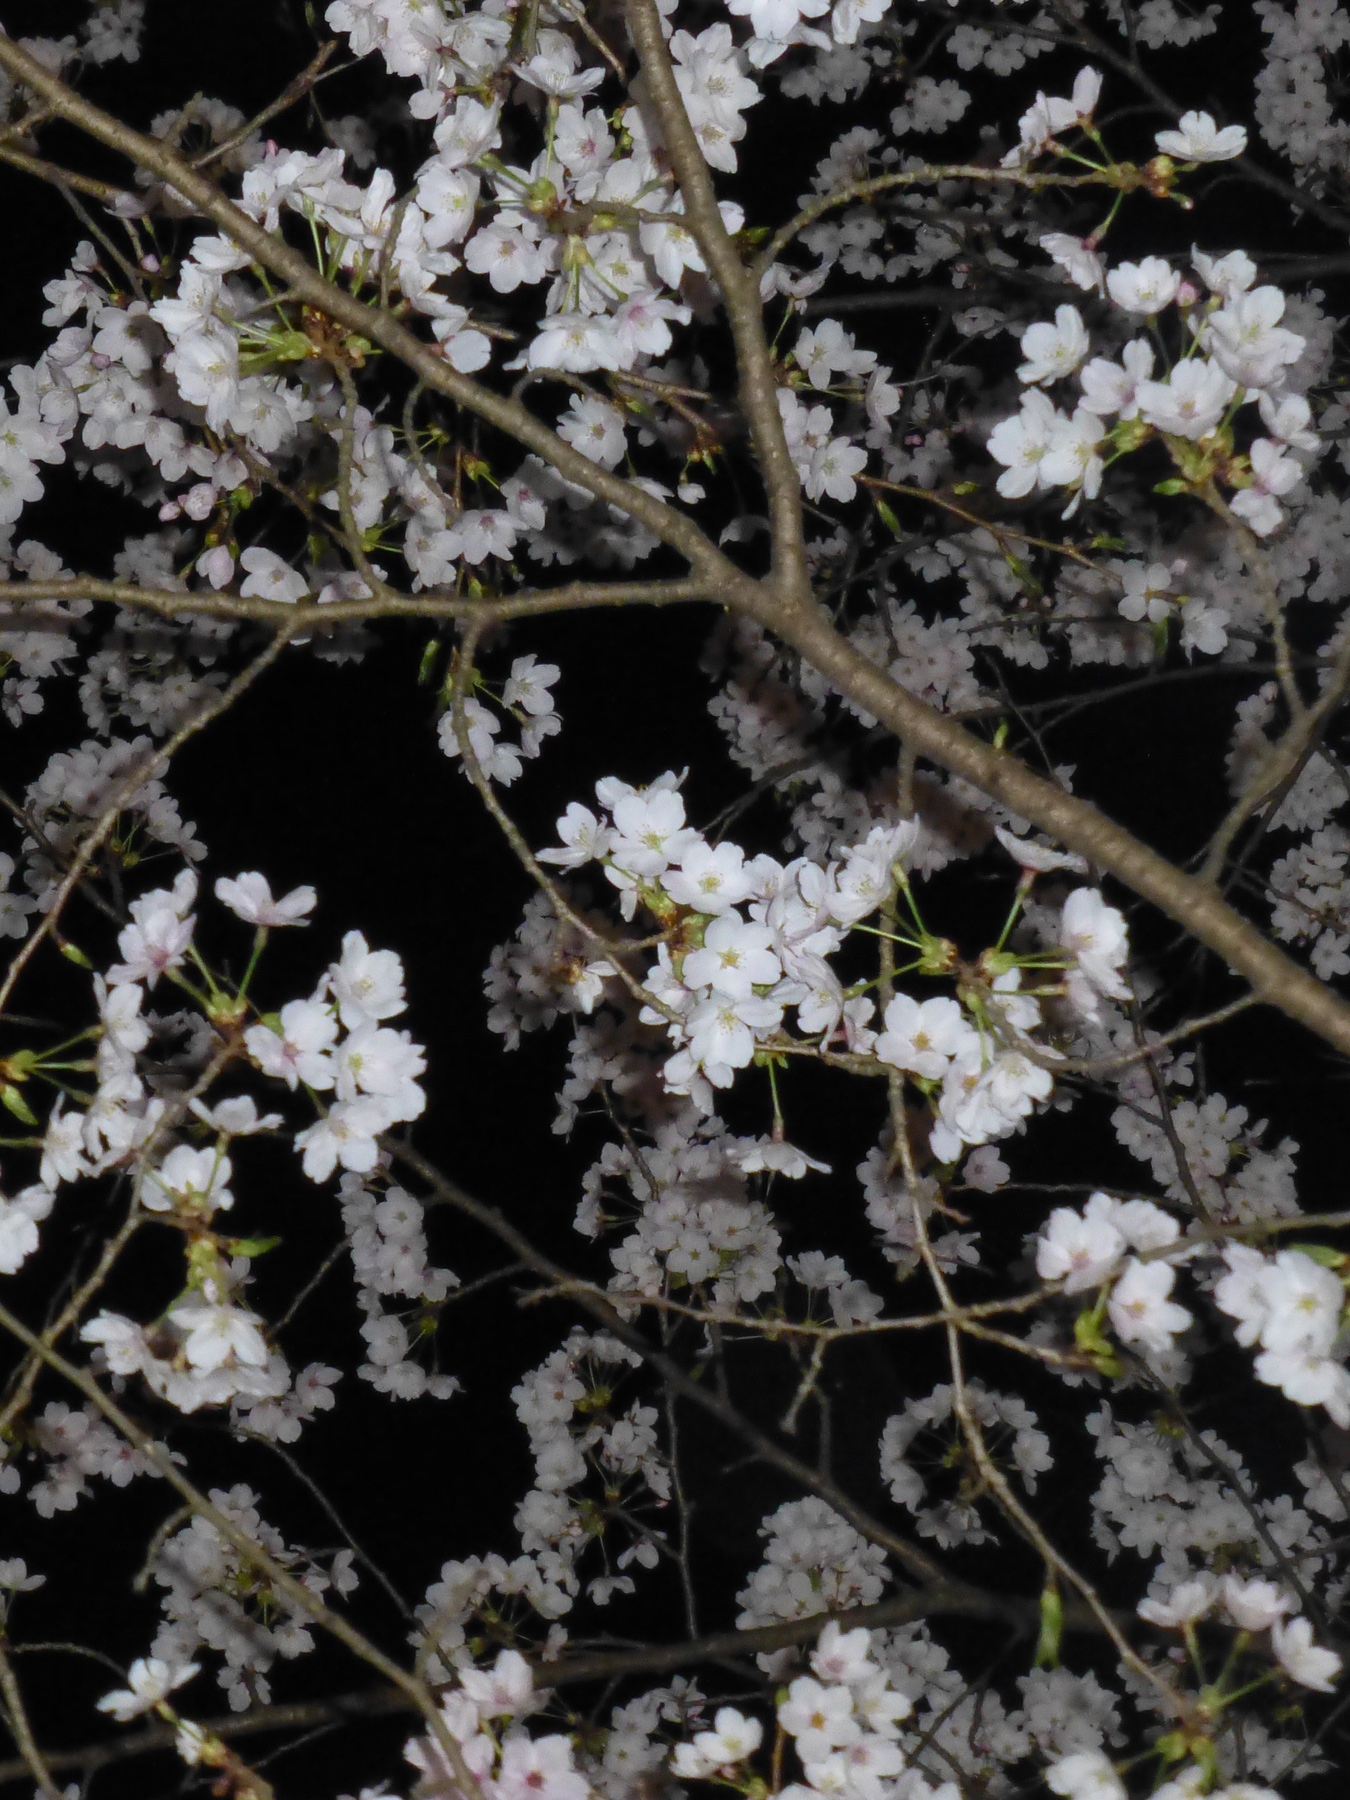 Sakura petals at night